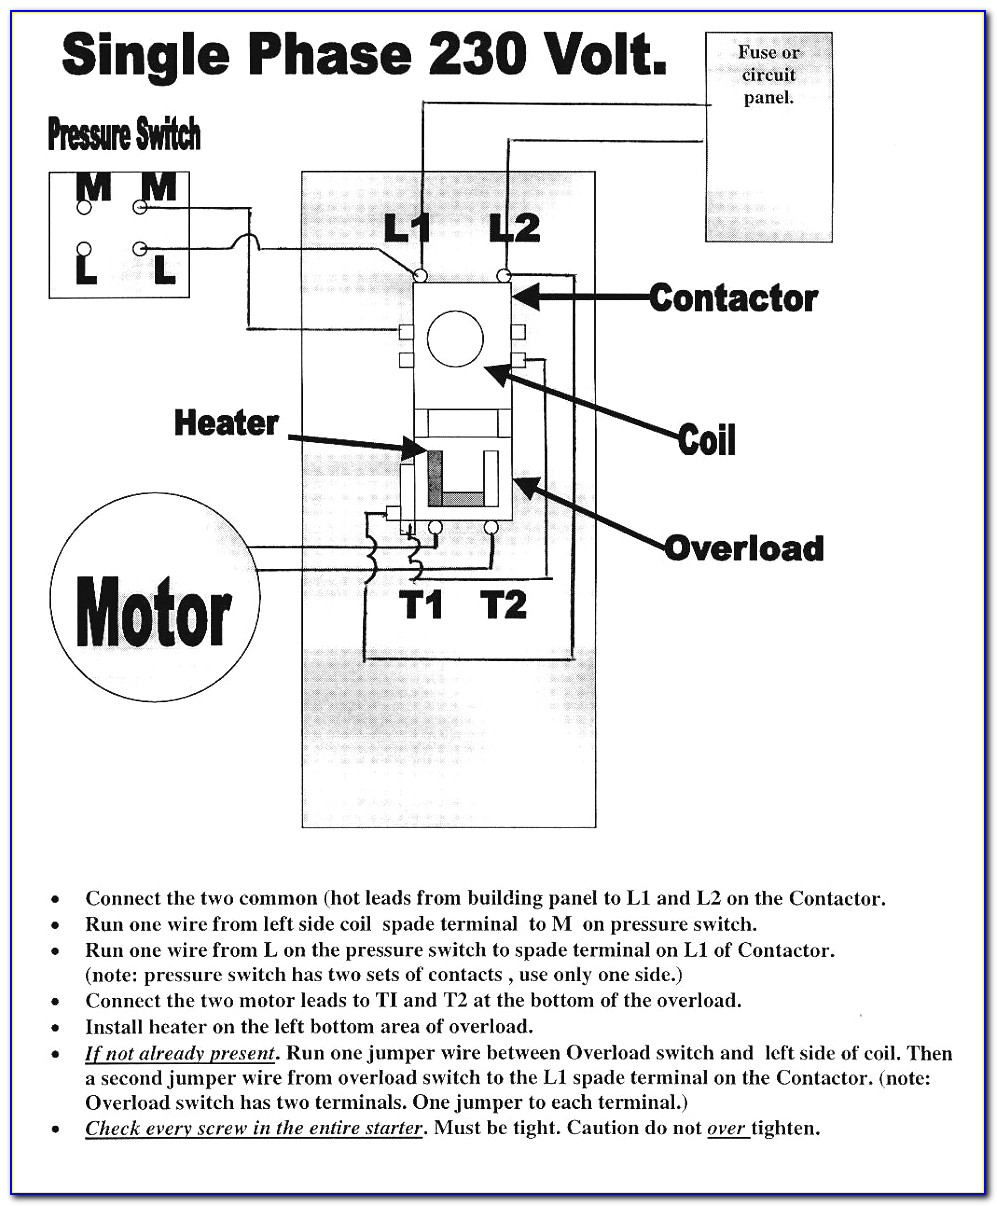 Ingersoll Rand Air Compressor Wiring Diagram Single Phase